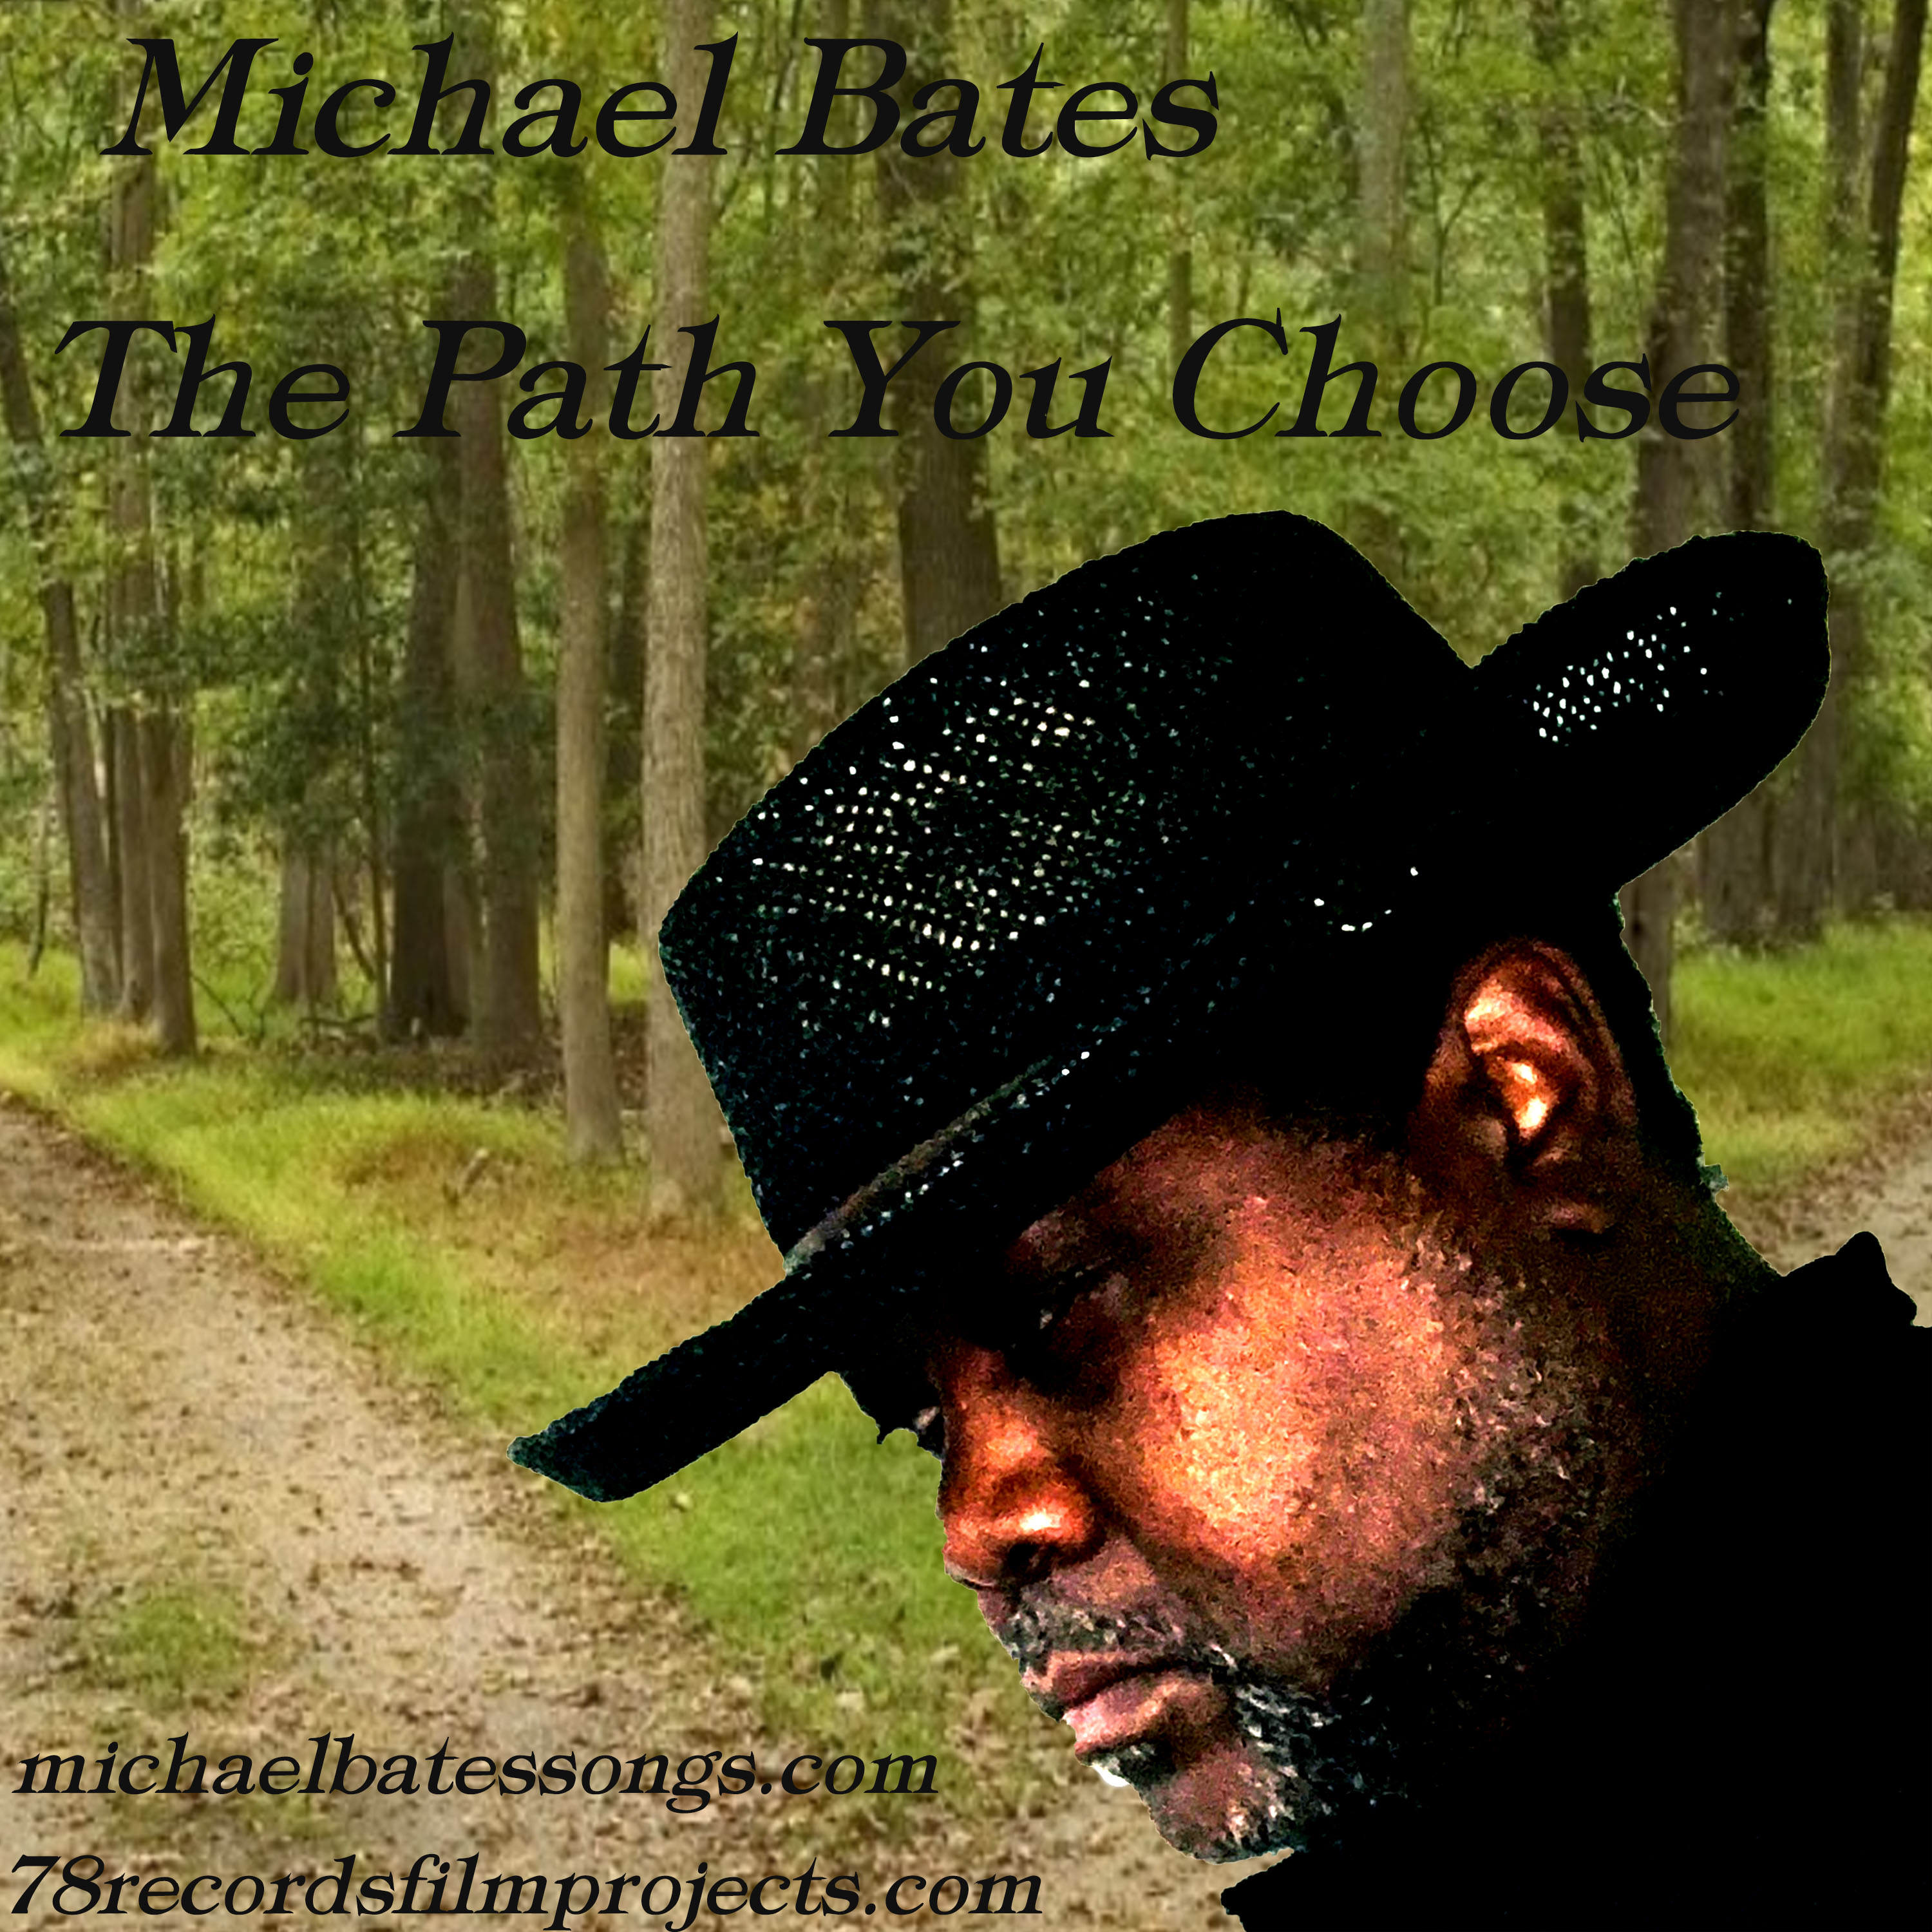 The Path You Choose Michael Bates